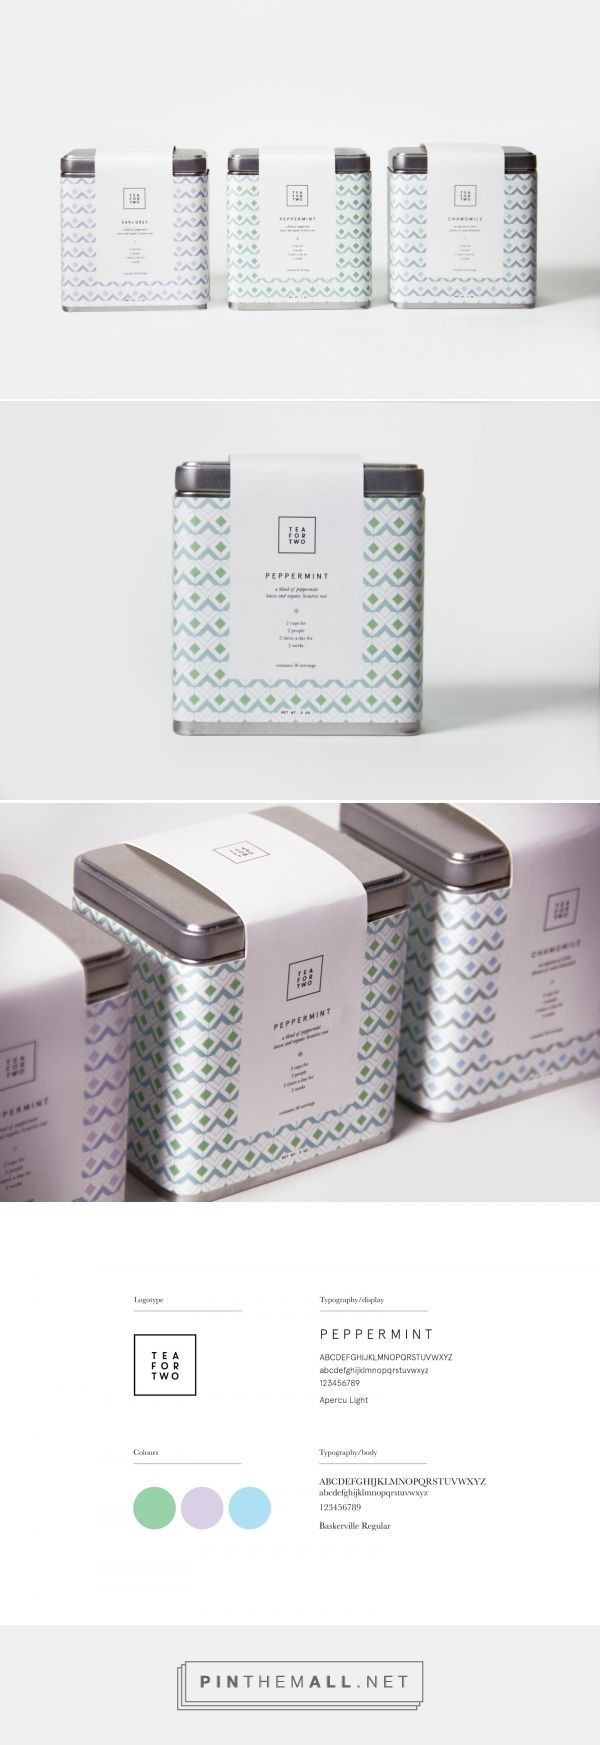 Tea for Two (Student Project) - Packaging of the World - Creative Package Design Gallery - http://www.packagingoftheworld.com/2016/08/tea-for-two-student-project.html